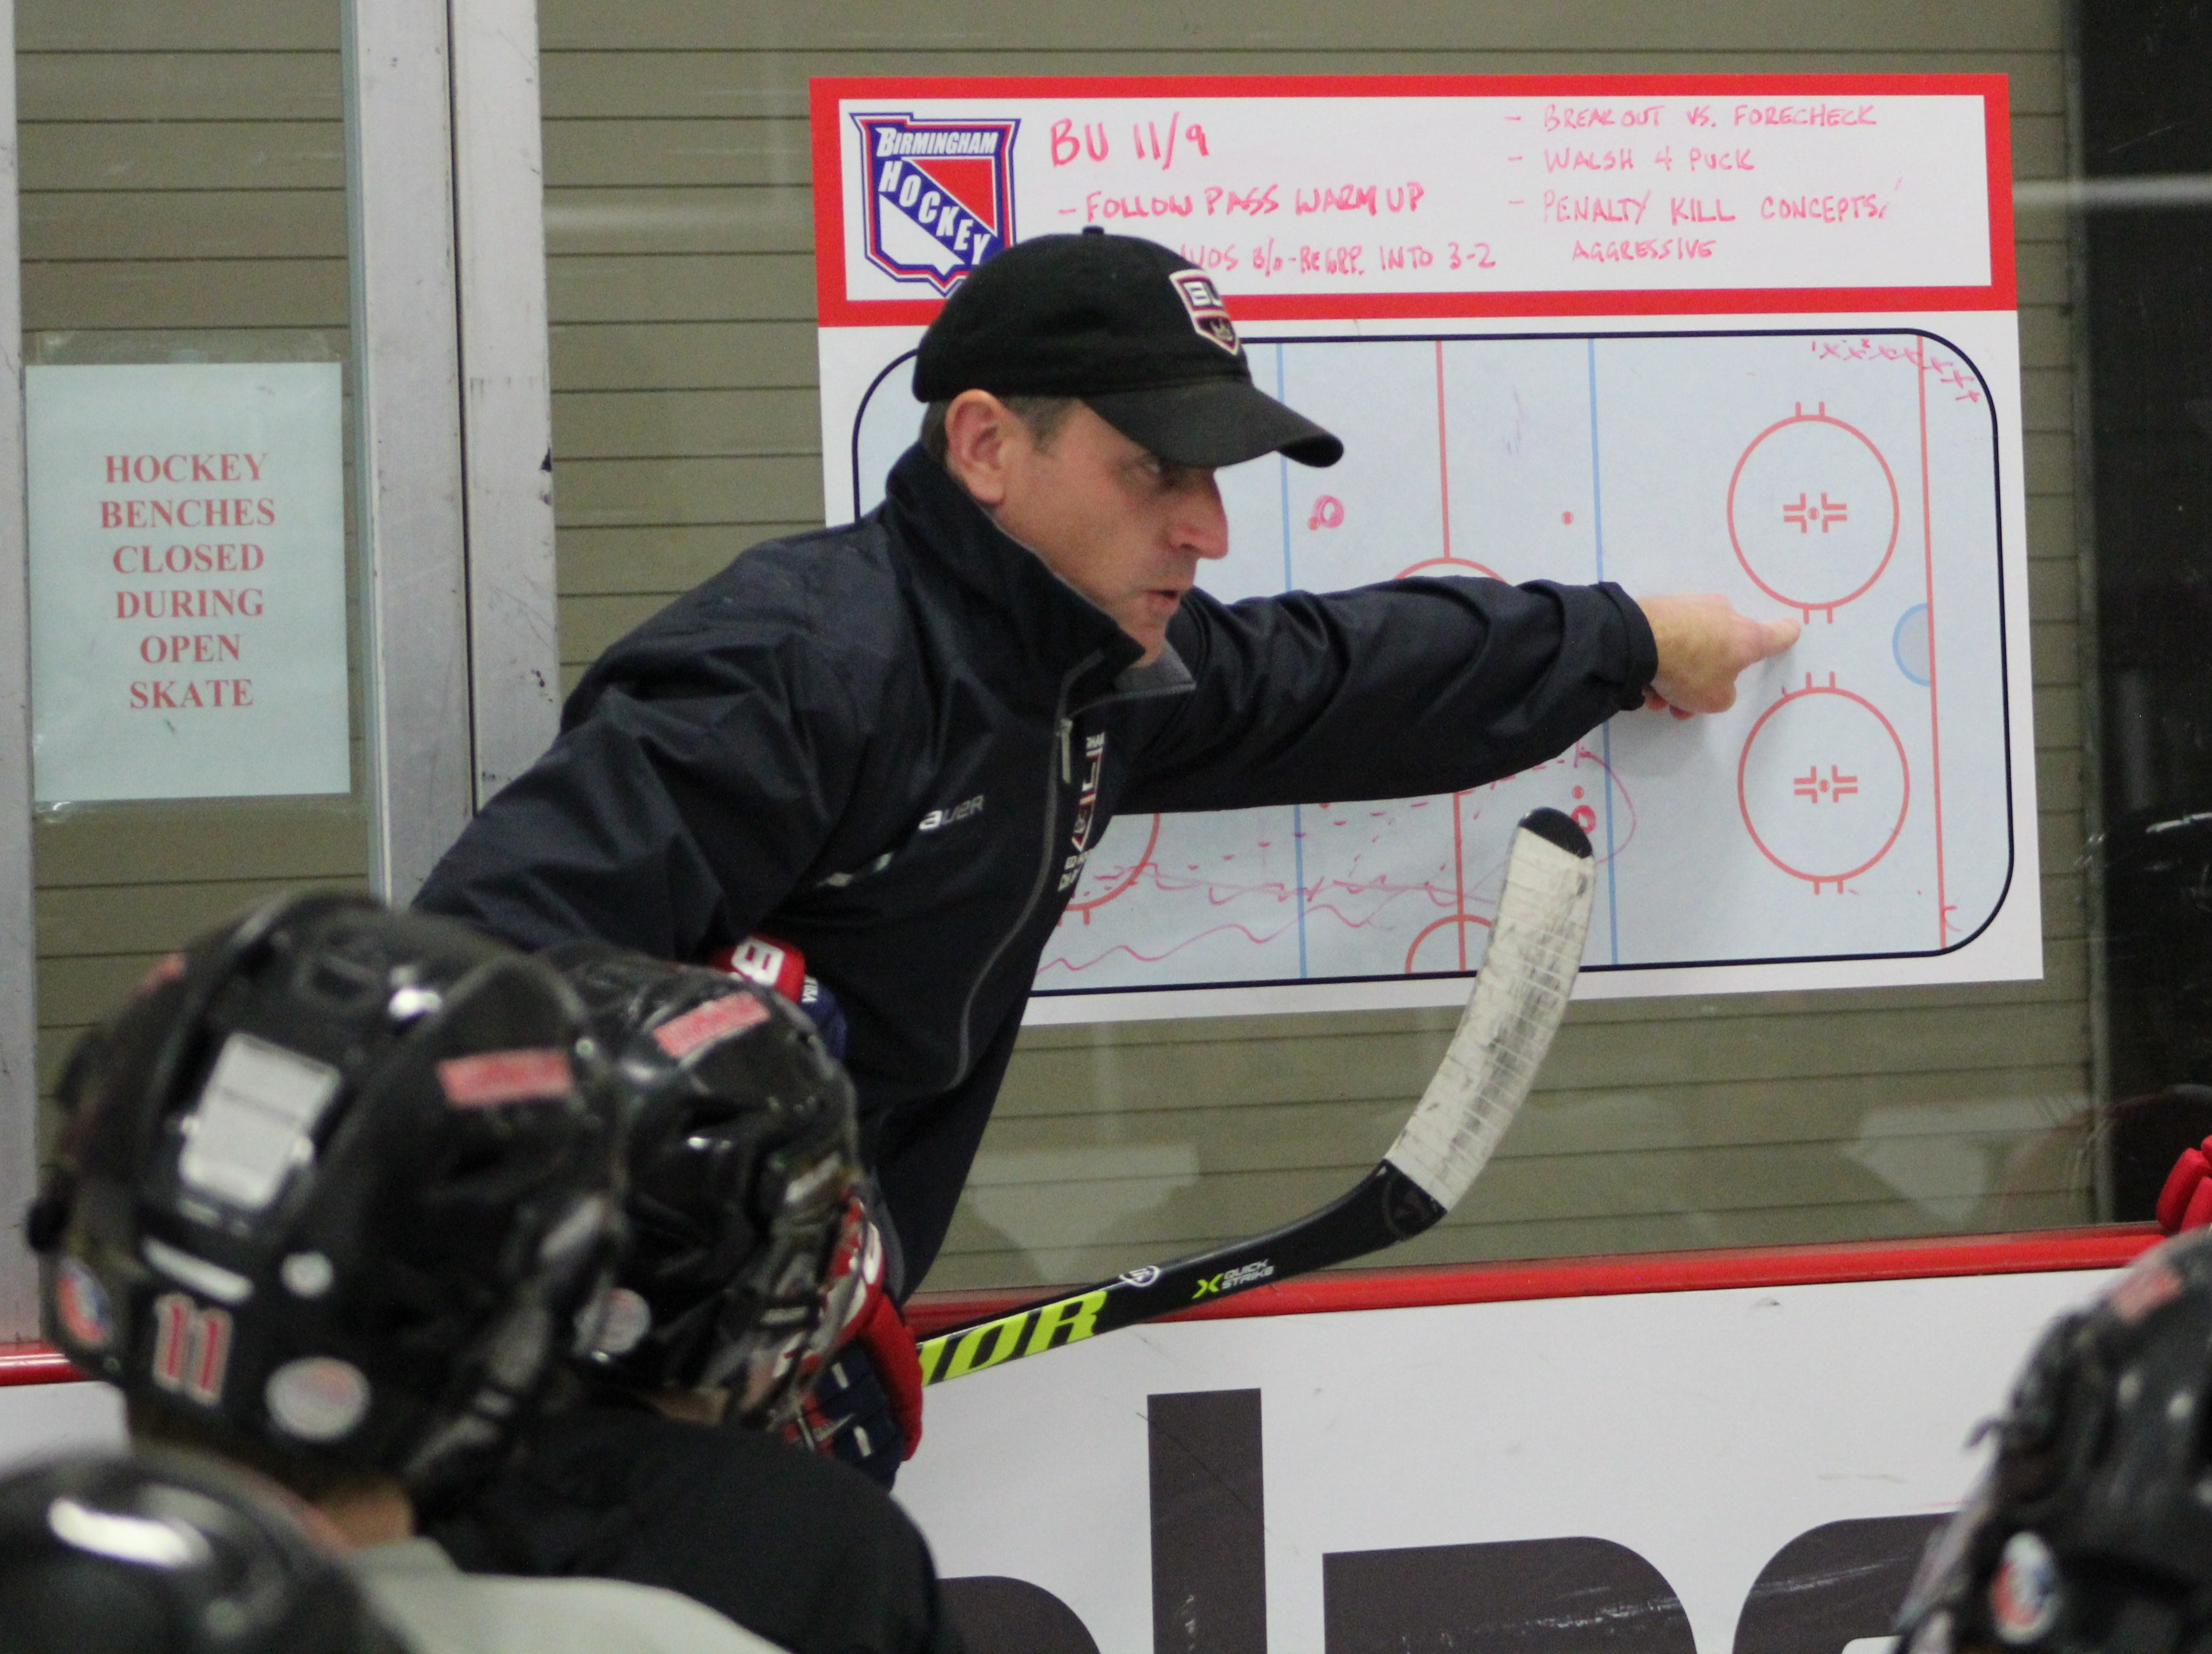 Mike Boback, a self-professed hockey addict, adds high school coach to his resume